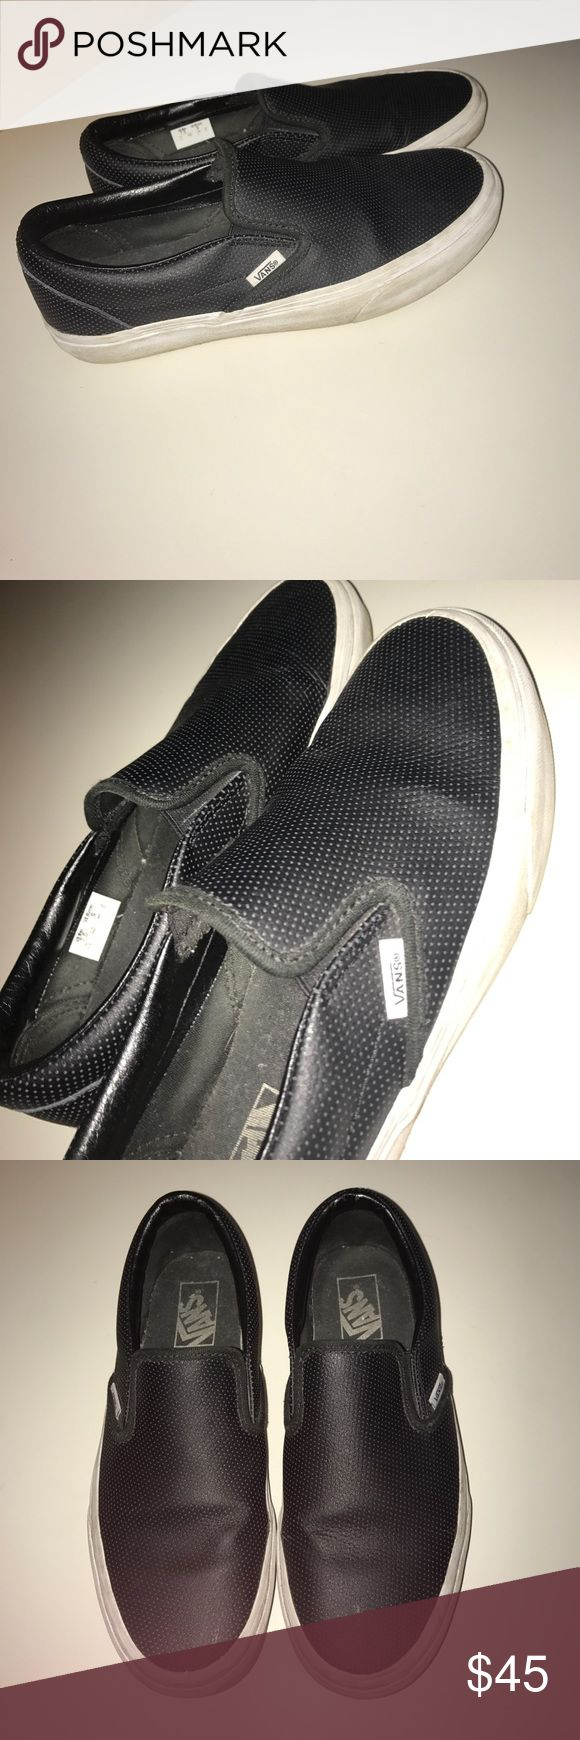 Leather vans slip on shoes These are super comfy black leather Vans slip on shoes.  I would wash & clean before shipping out. Very good condition, no tearing. Vans Shoes Sneakers